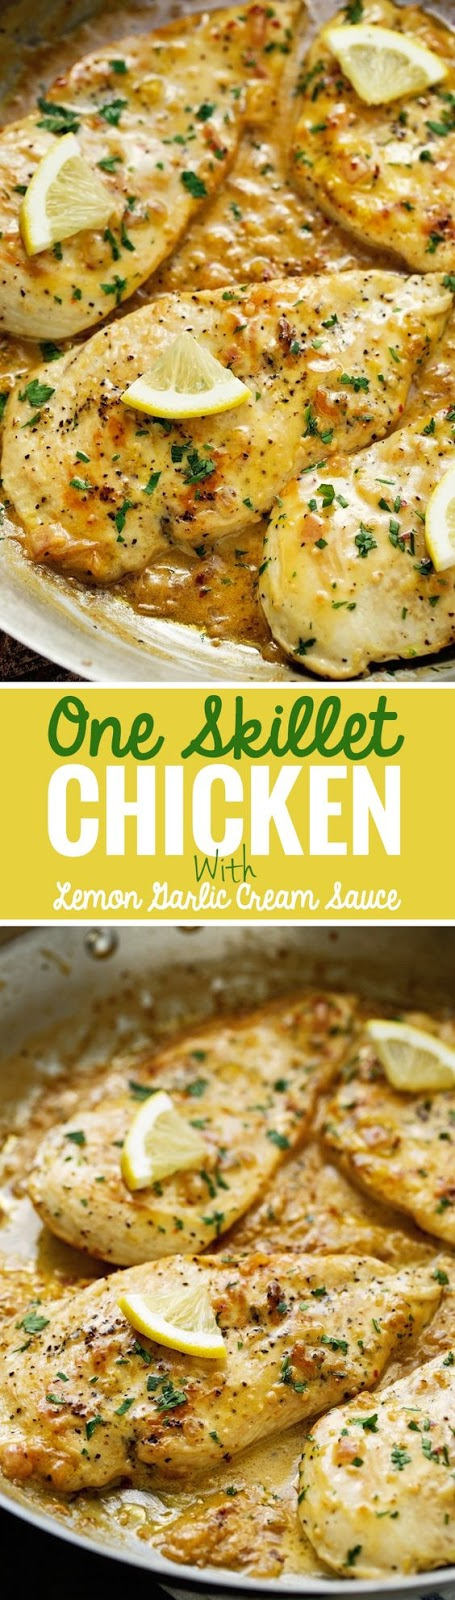 ONE SKILLET CHICKEN WITH LEMON GARLIC CREAM SAUCE #SKILLET #CHICKEN #LEMON #GARLIC #CREAM #SAUCE #DESSERTS #HEALTHYFOOD #EASY_RECIPES #DINNER #LAUCH #DELICIOUS #EASY #HOLIDAYS #RECIPE #SPECIAL_DIET #WORLD_CUISINE #CAKE #GRILL #APPETIZERS #HEALTHY_RECIPES #DRINKS #COOKING_METHOD #ITALIAN_RECIPES #MEAT #VEGAN_RECIPES #COOKIES #PASTA #FRUIT #SALAD #SOUP_APPETIZERS #NON_ALCOHOLIC_DRINKS #MEAL_PLANNING #VEGETABLES #SOUP #PASTRY #CHOCOLATE #DAIRY #ALCOHOLIC_DRINKS #BULGUR_SALAD #BAKING #SNACKS #BEEF_RECIPES #MEAT_APPETIZERS #MEXICAN_RECIPES #BREAD #ASIAN_RECIPES #SEAFOOD_APPETIZERS #MUFFINS #BREAKFAST_AND_BRUNCH #CONDIMENTS #CUPCAKES #CHEESE #CHICKEN_RECIPES #PIE #COFFEE #NO_BAKE_DESSERTS #HEALTHY_SNACKS #SEAFOOD #GRAIN #LUNCHES_DINNERS #MEXICAN #QUICK_BREAD #LIQUOR